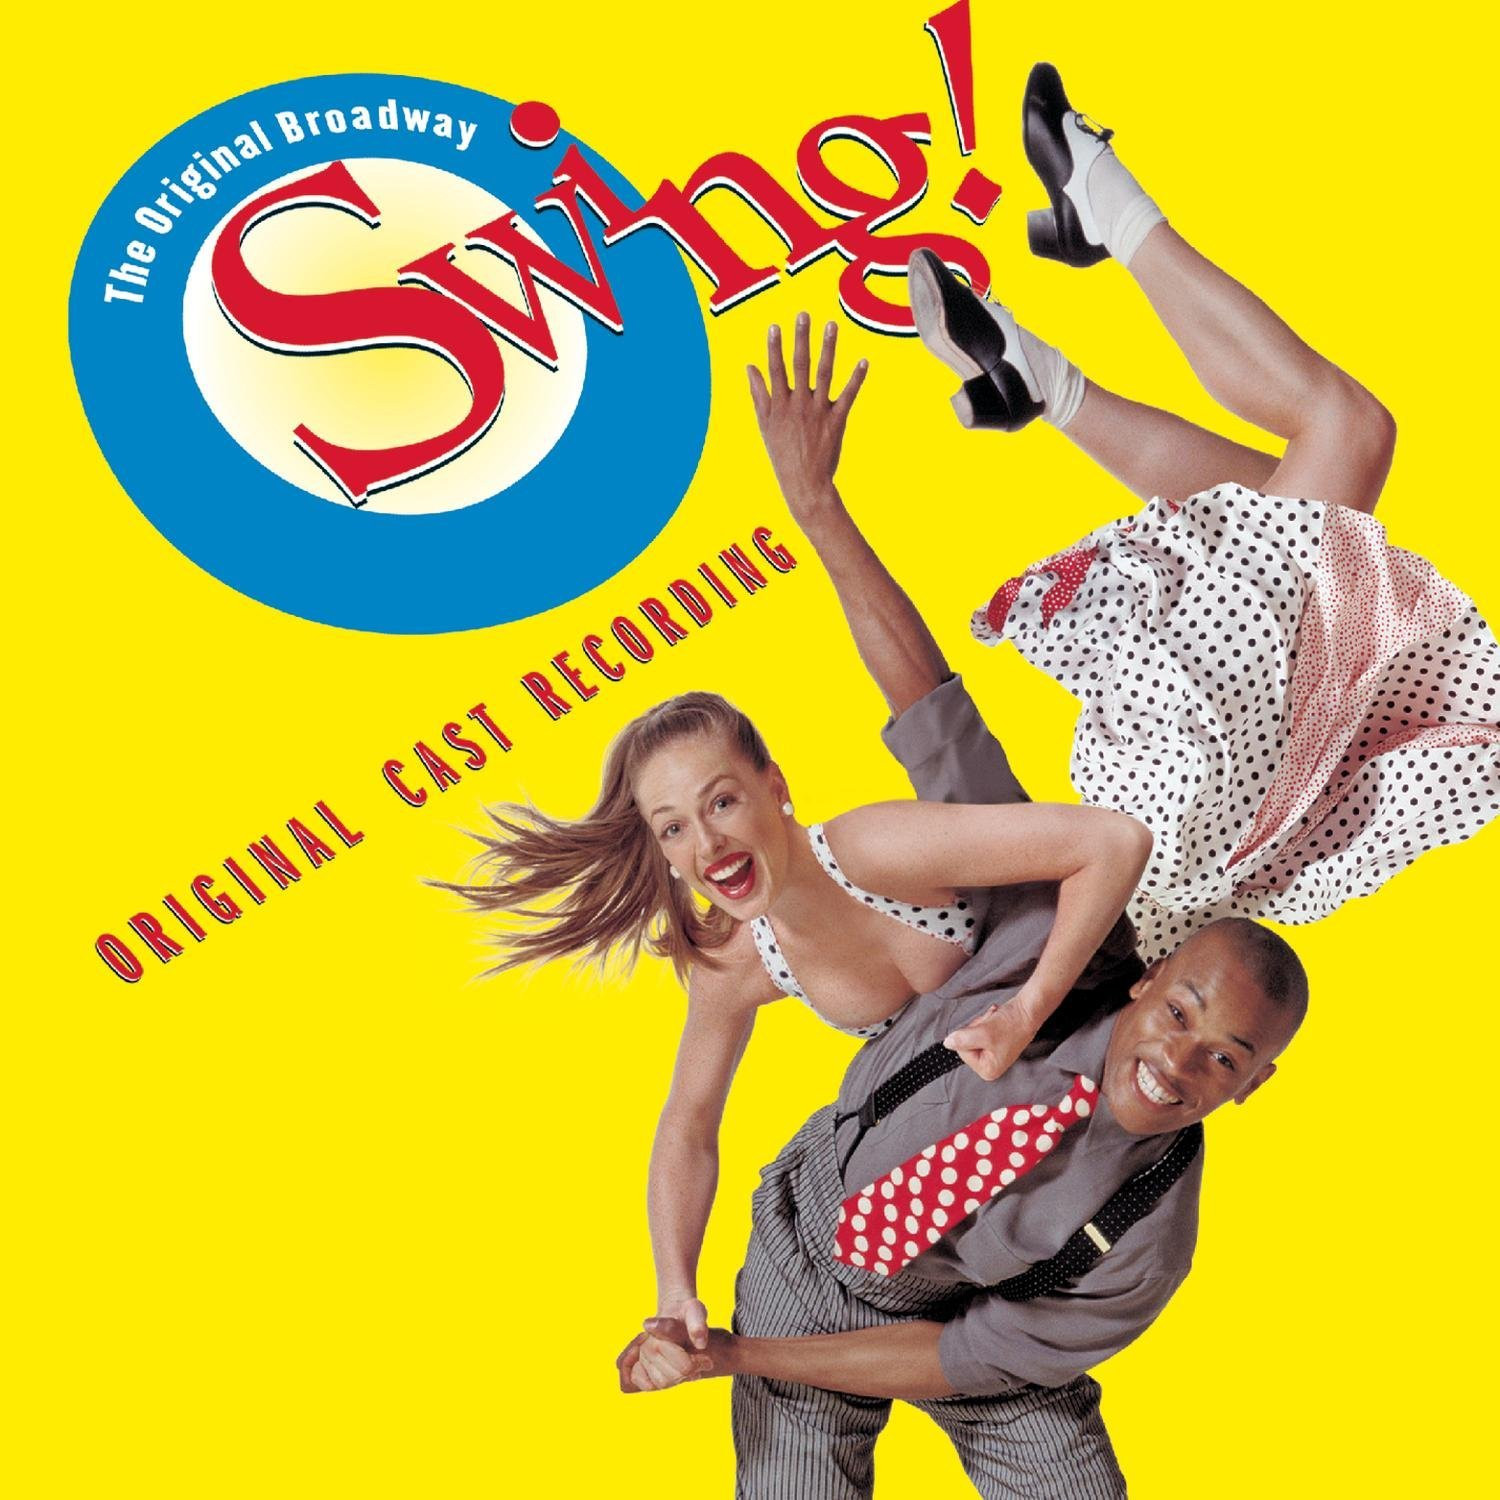 swing on broadway.jpg